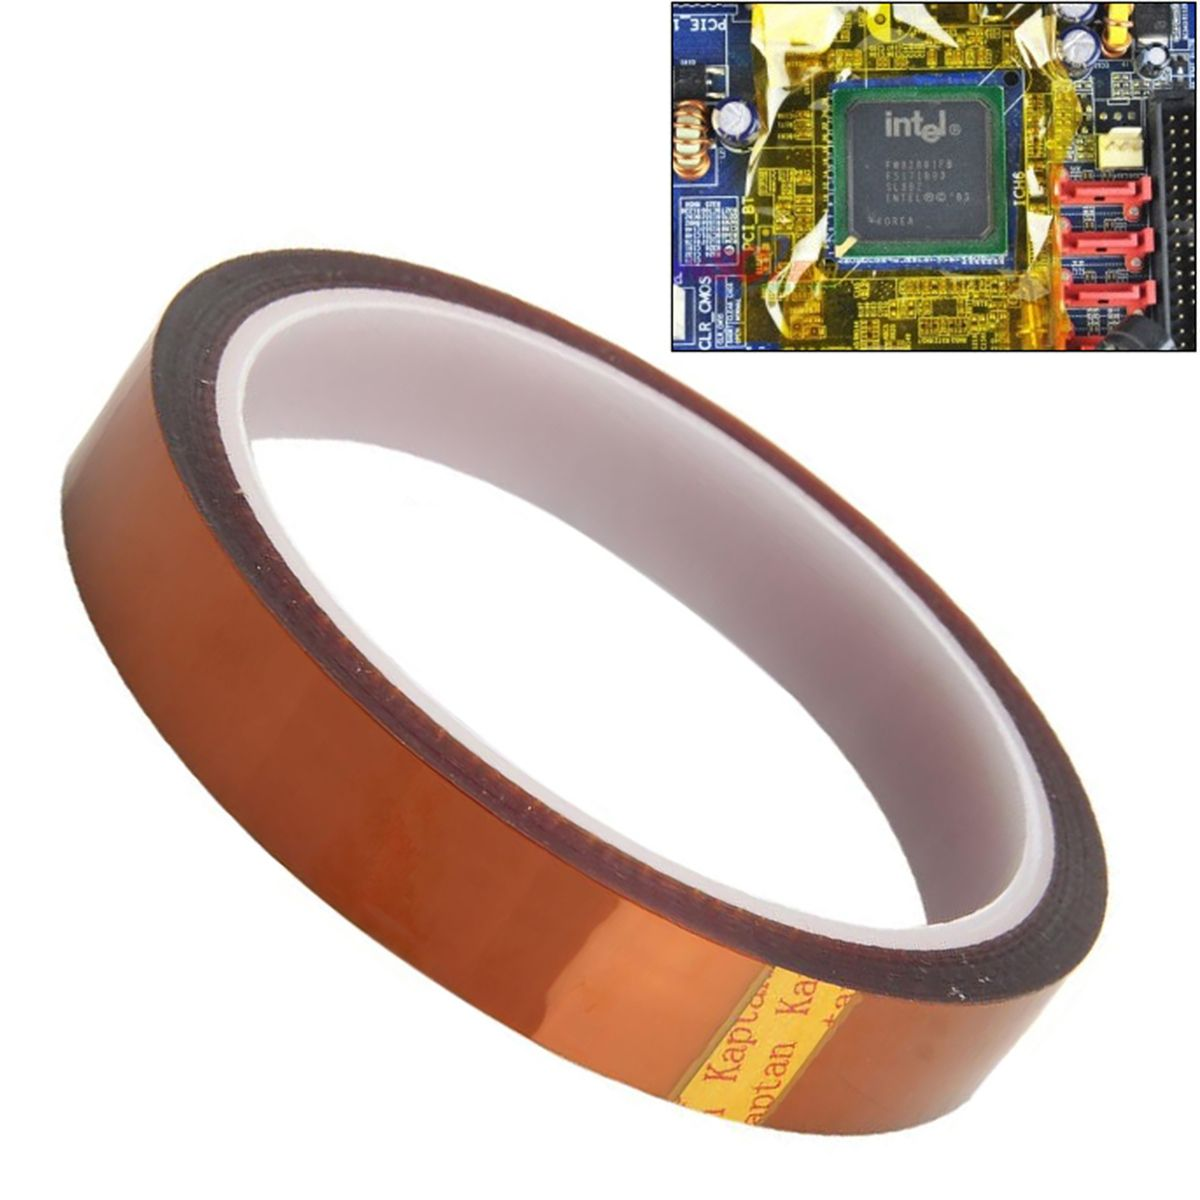 2.65US $ 35% OFF|Mayitr Adhesive Polyimide Tape High Temperature Heat Resistant Tapes for BGA Reworks Transformer Electronic Industry 33m * 15mm|tape tape|industrial tapebga tape - AliExpress